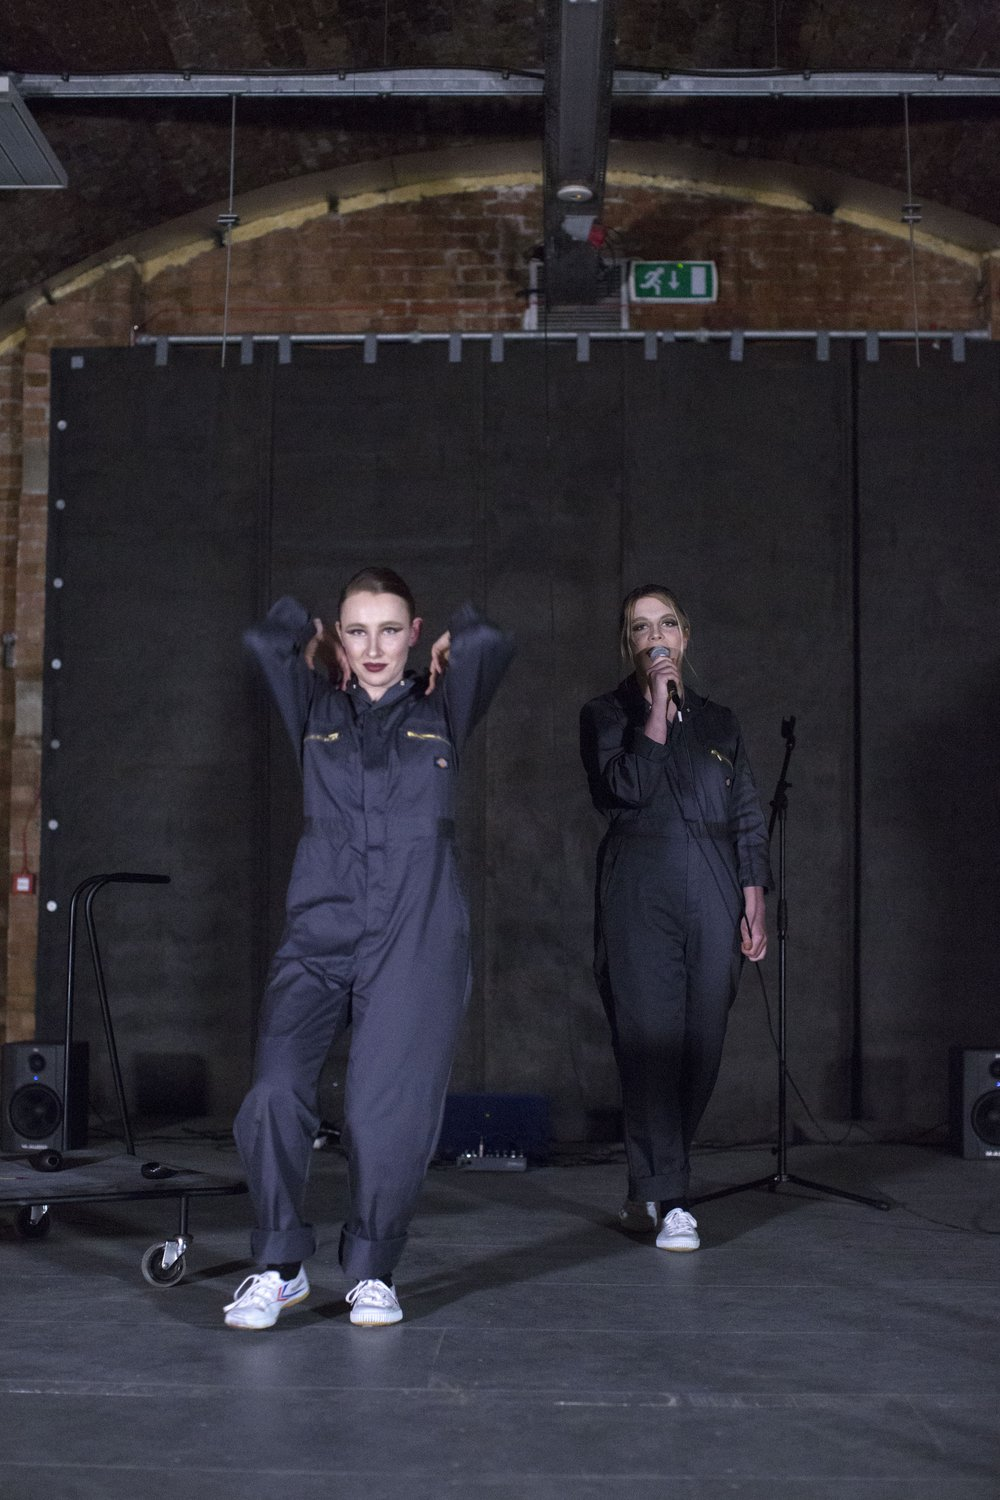 Performance by Paloma Proudfoot and Aniela Piasecka